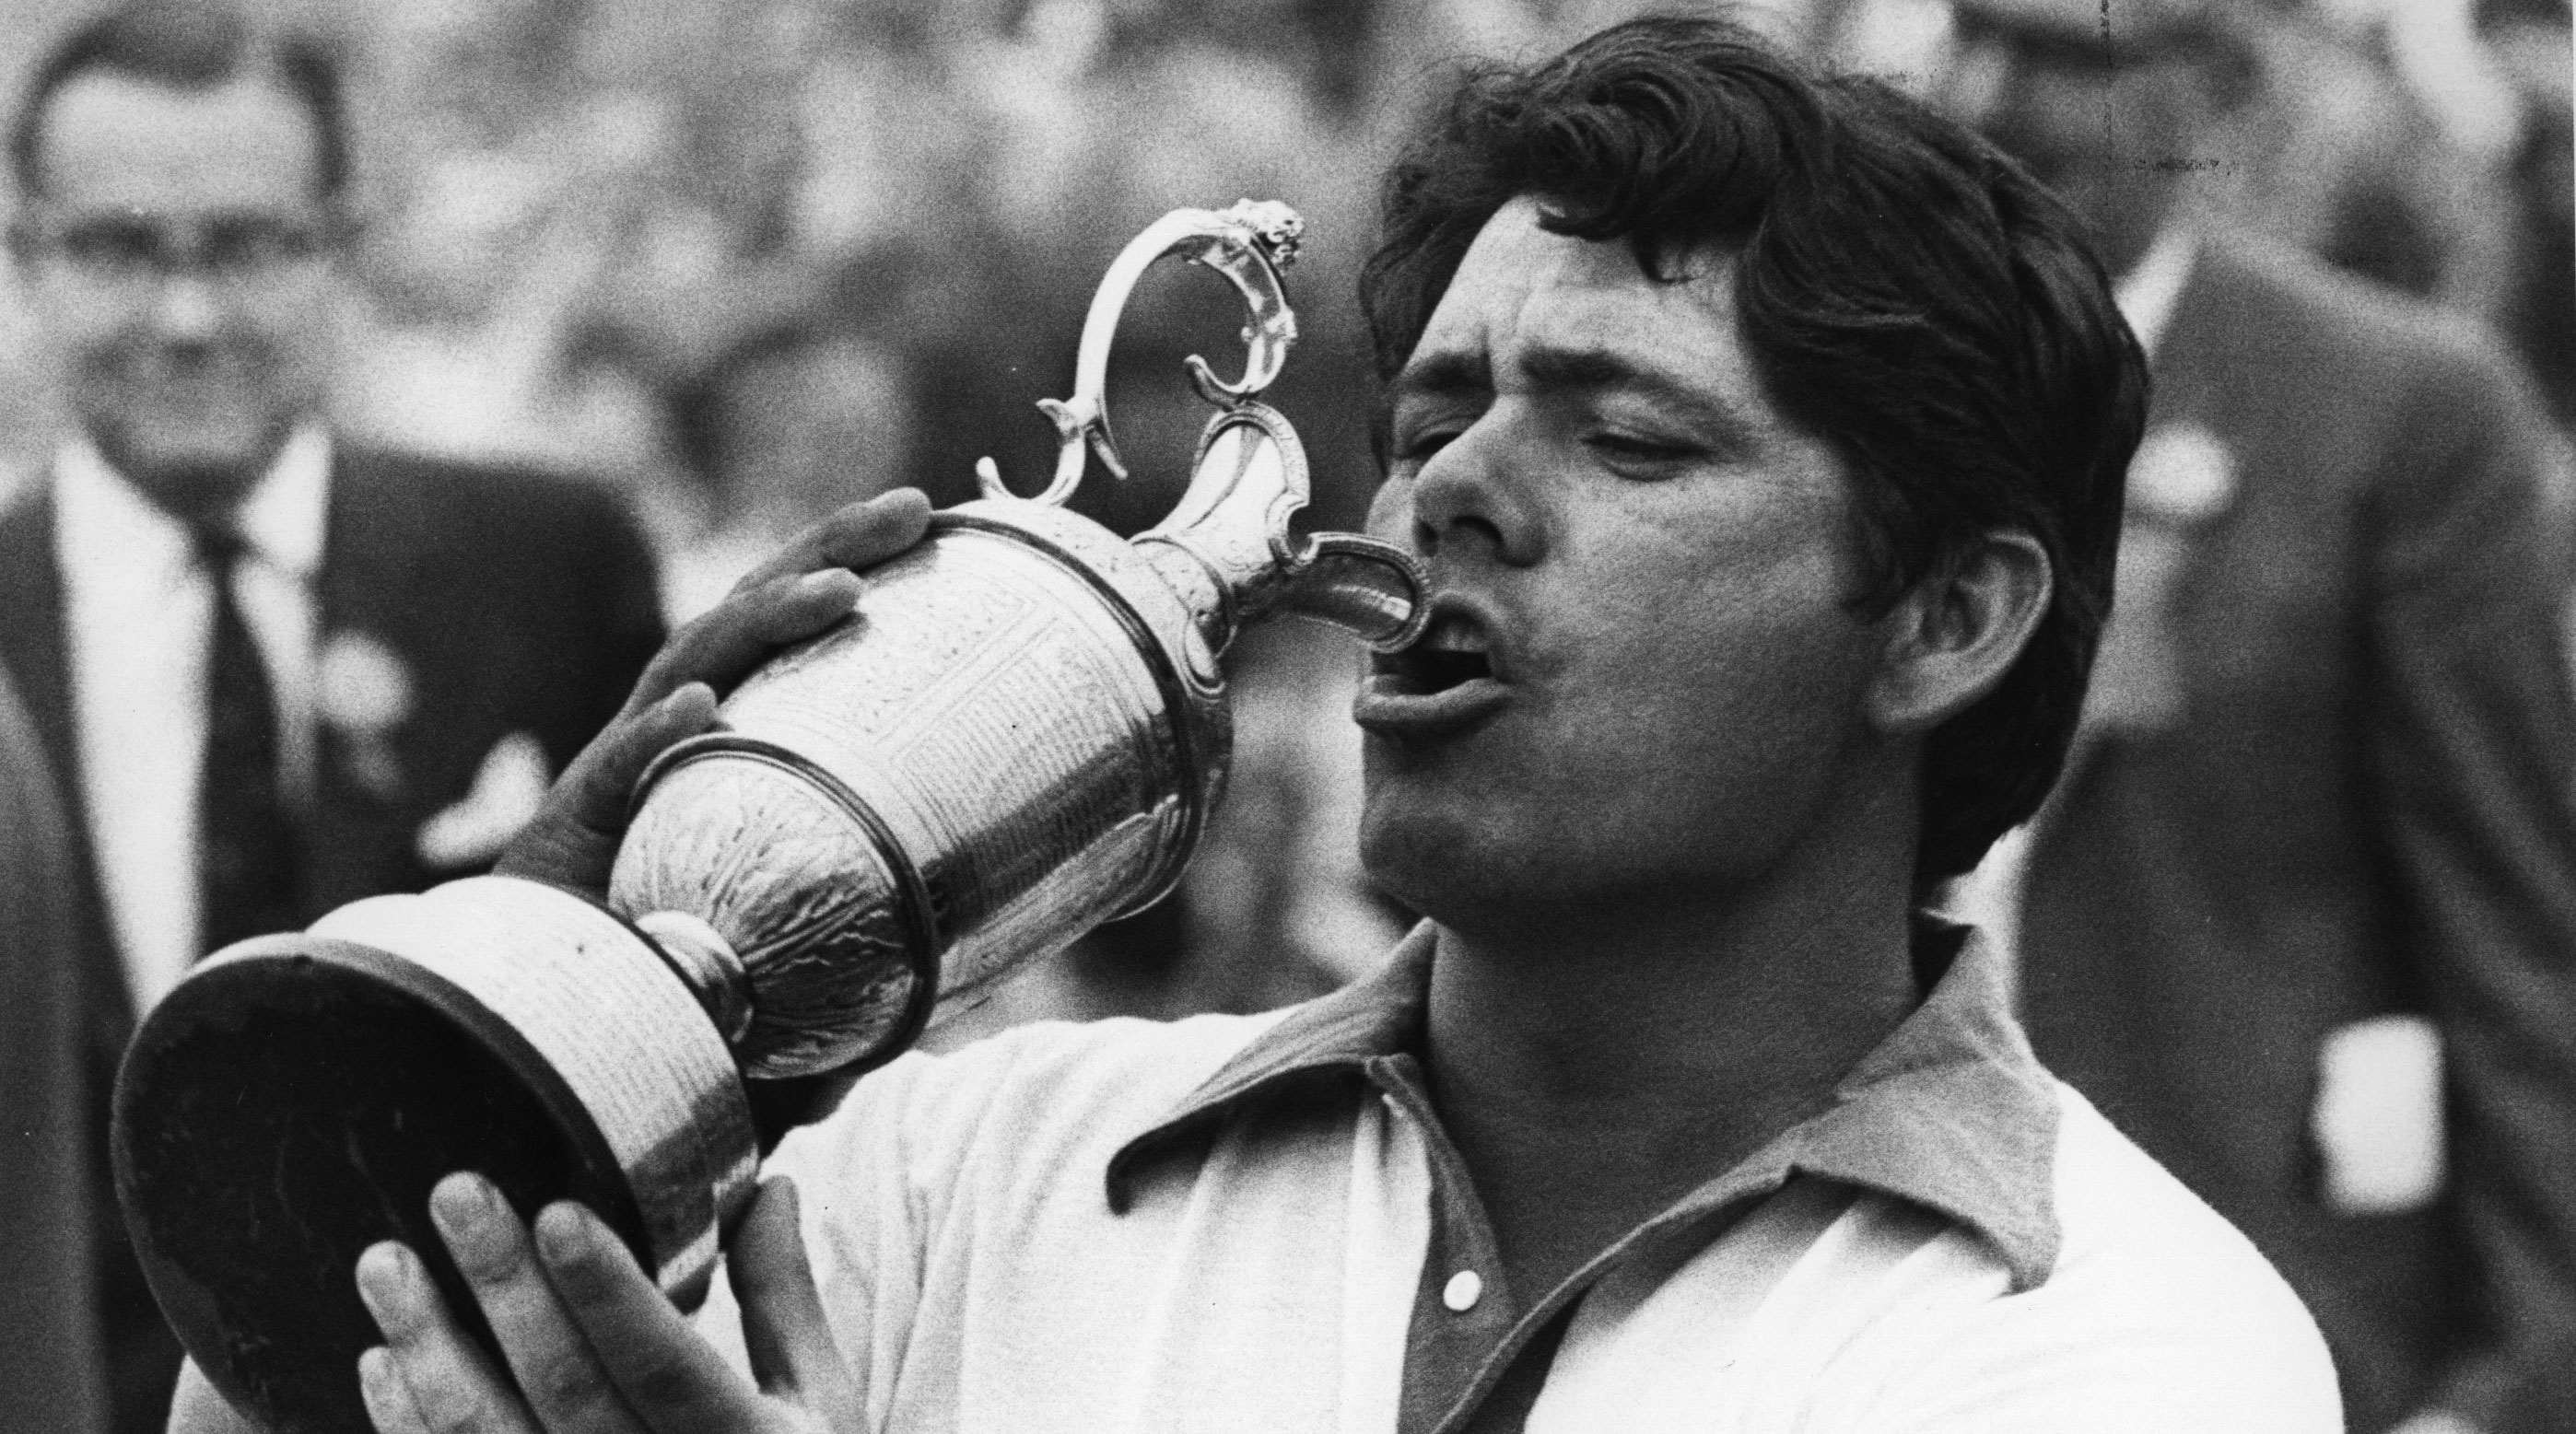 Trevino in the moments after winning the 1971 British Open at Royal Birkdale.